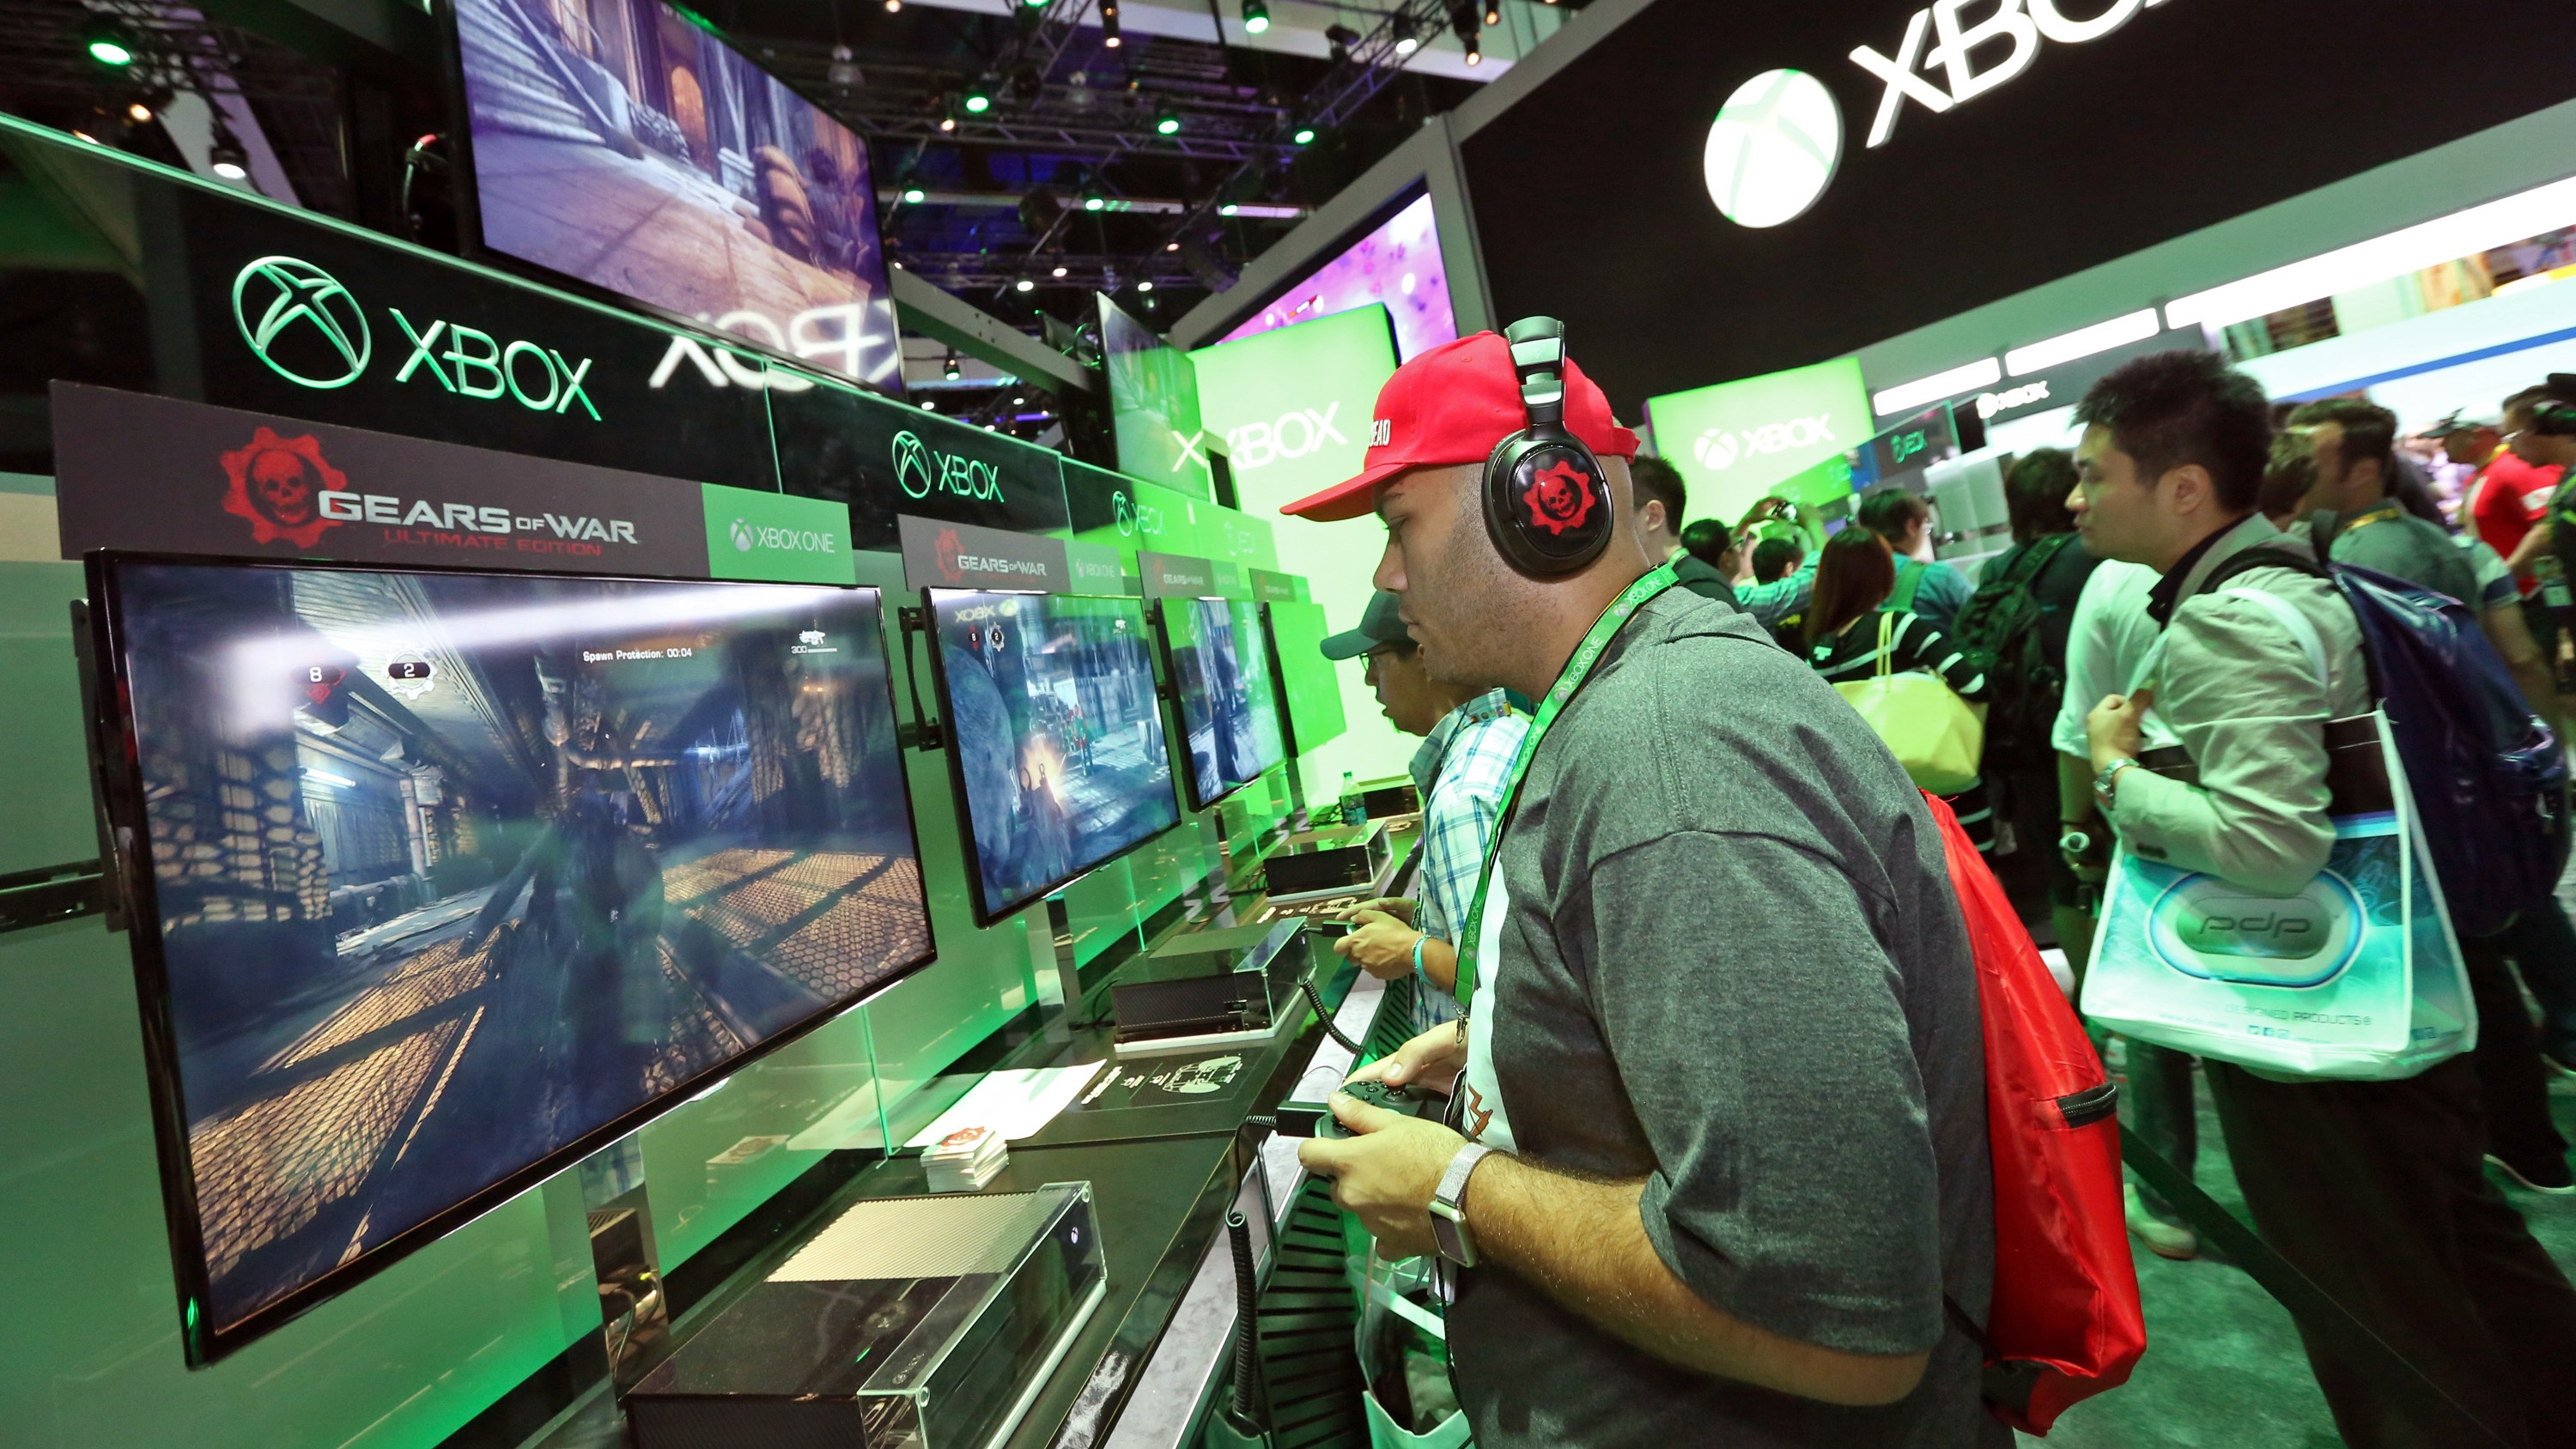 IMAGE DISTRIBUTED FOR MICROSOFT - E3 2015 attendees get hands on with Gears of War Ultimate Edition at the Xbox booth at E3 in Los Angeles on Tuesday, June 16, 2015. (Photo by Casey Rodgers/Invision for Microsoft/AP Images)